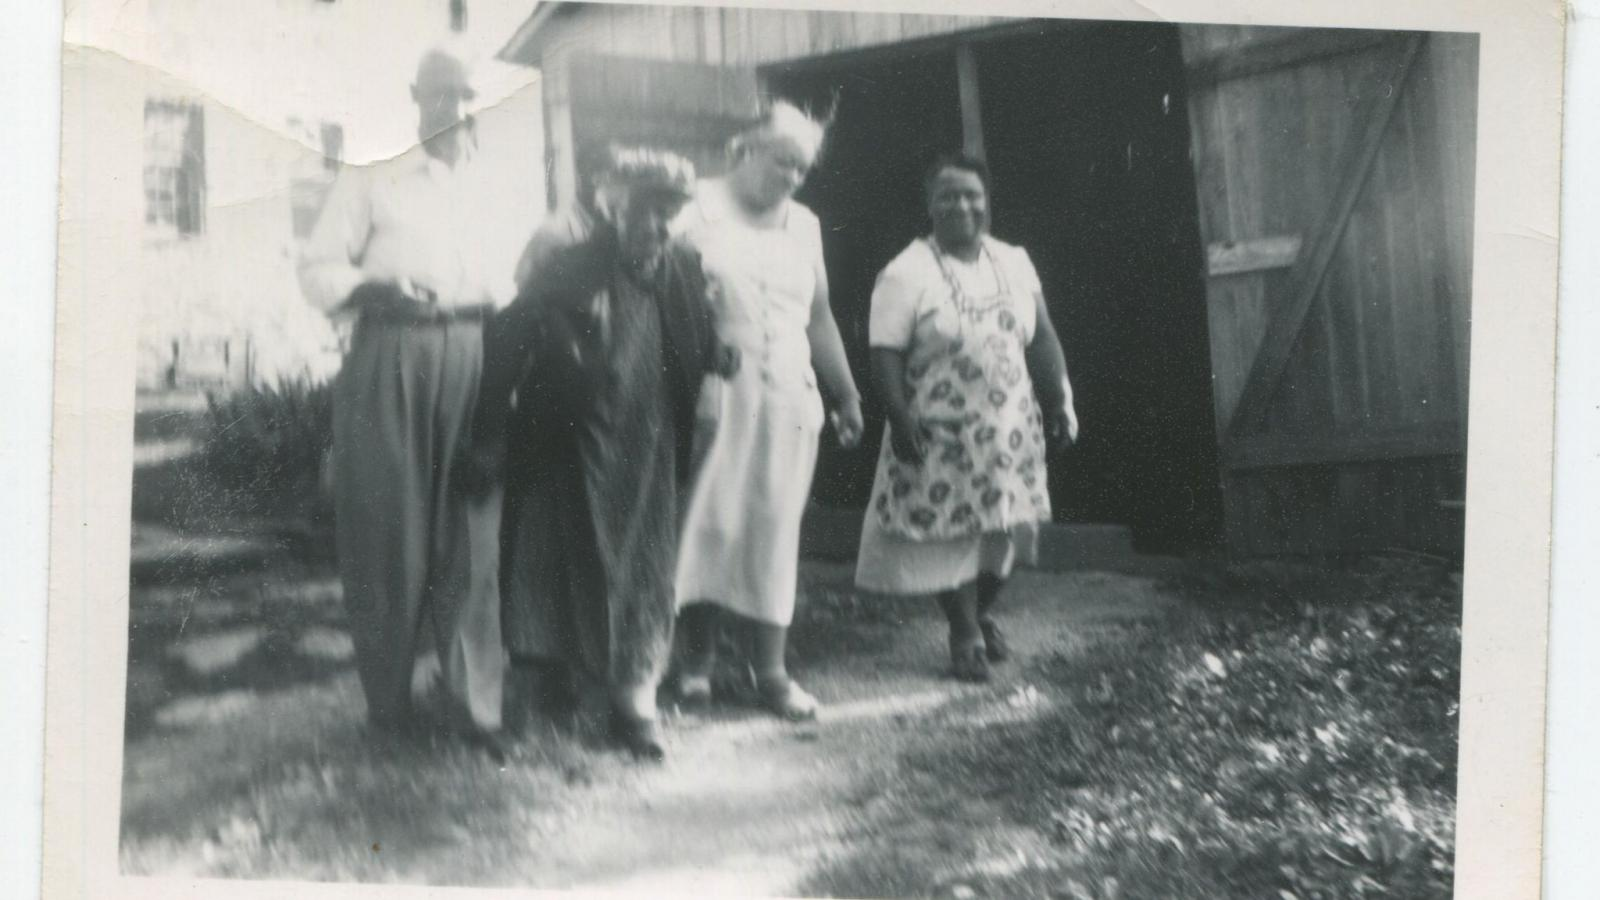 Group photo of John Luther Lewis, Anna Baker, Louise, and unknown